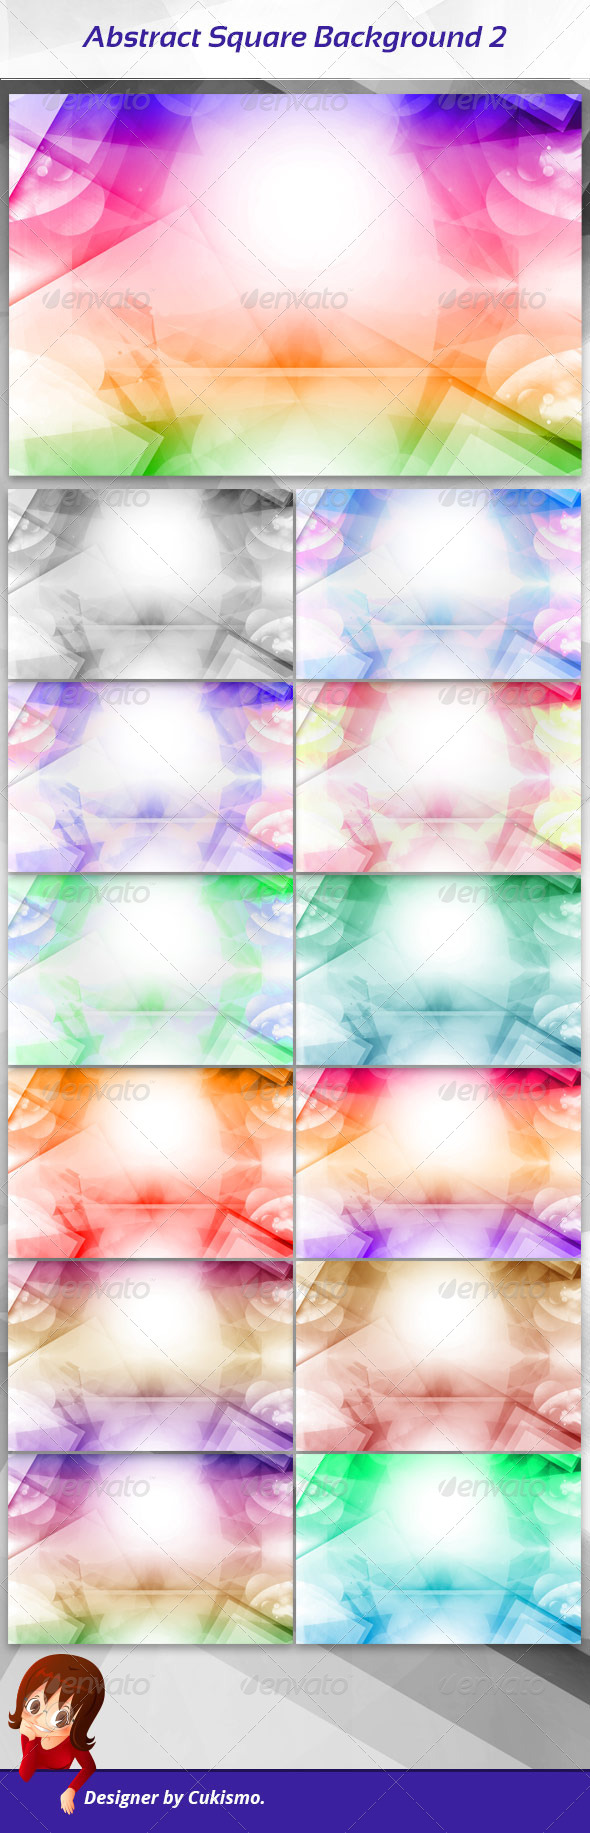 Abstract Square Background 2 - Abstract Backgrounds